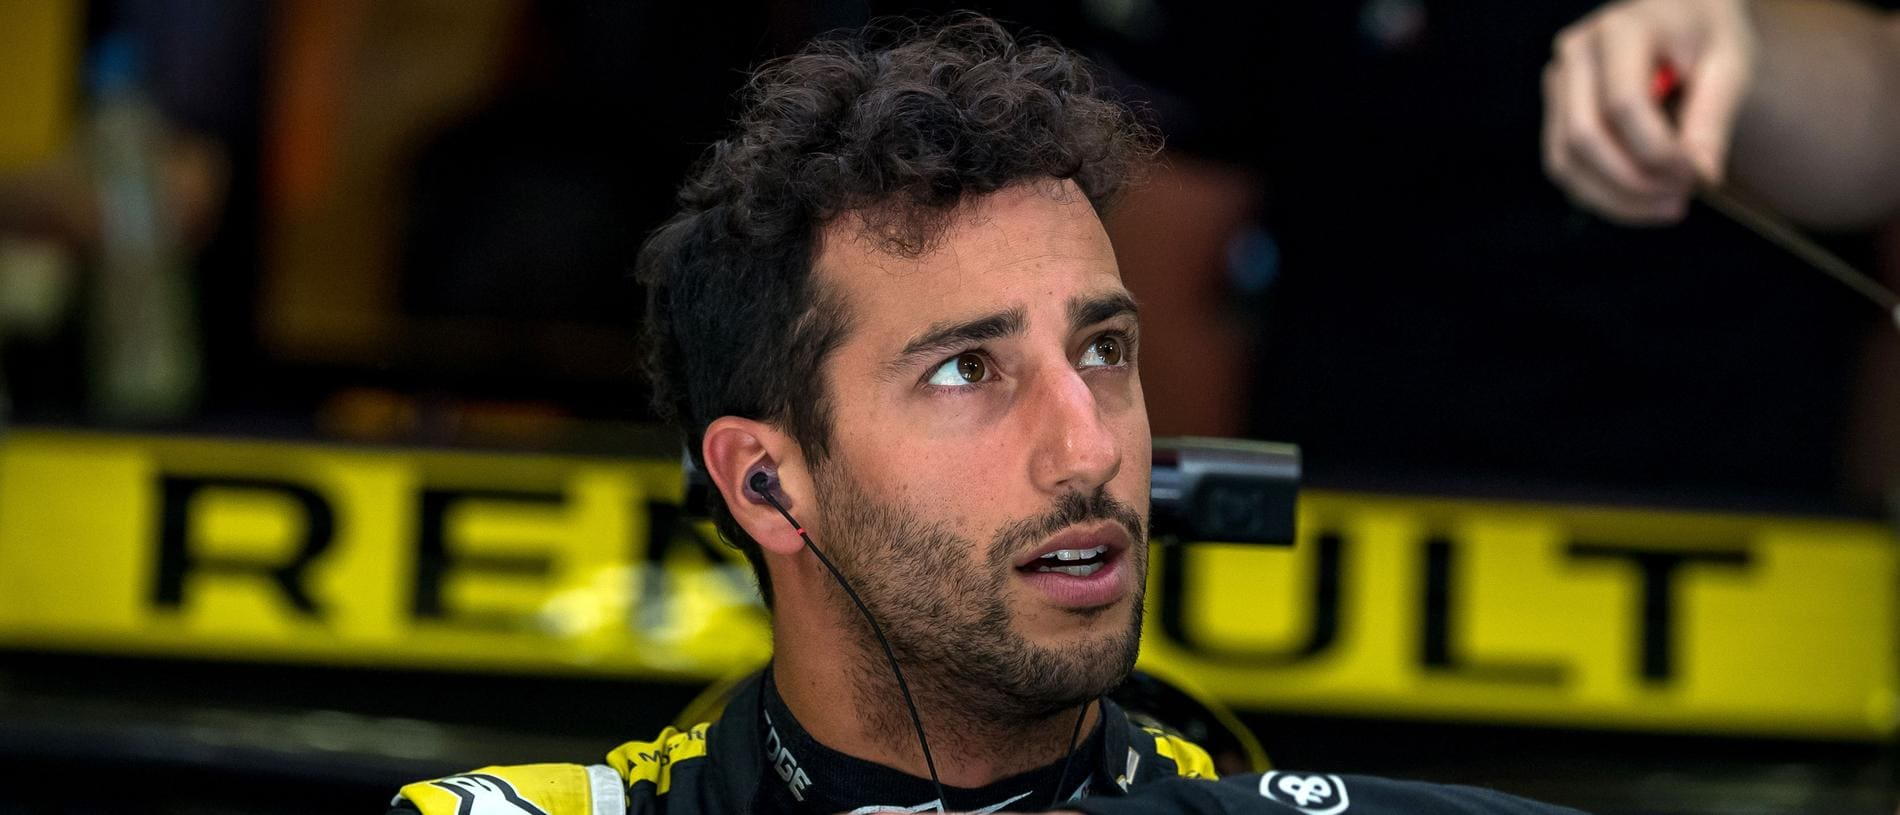 Renault's Australian driver Daniel Ricciardo rests in the paddock during the third practice session ahead of the Formula One Bahrain Grand Prix at the Sakhir circuit in the desert south of the Bahraini capital Manama, on March 30, 2019. - The Formula One Bahrain Grand Prix will be held on March 31. (Photo by Andrej ISAKOVIC / AFP)